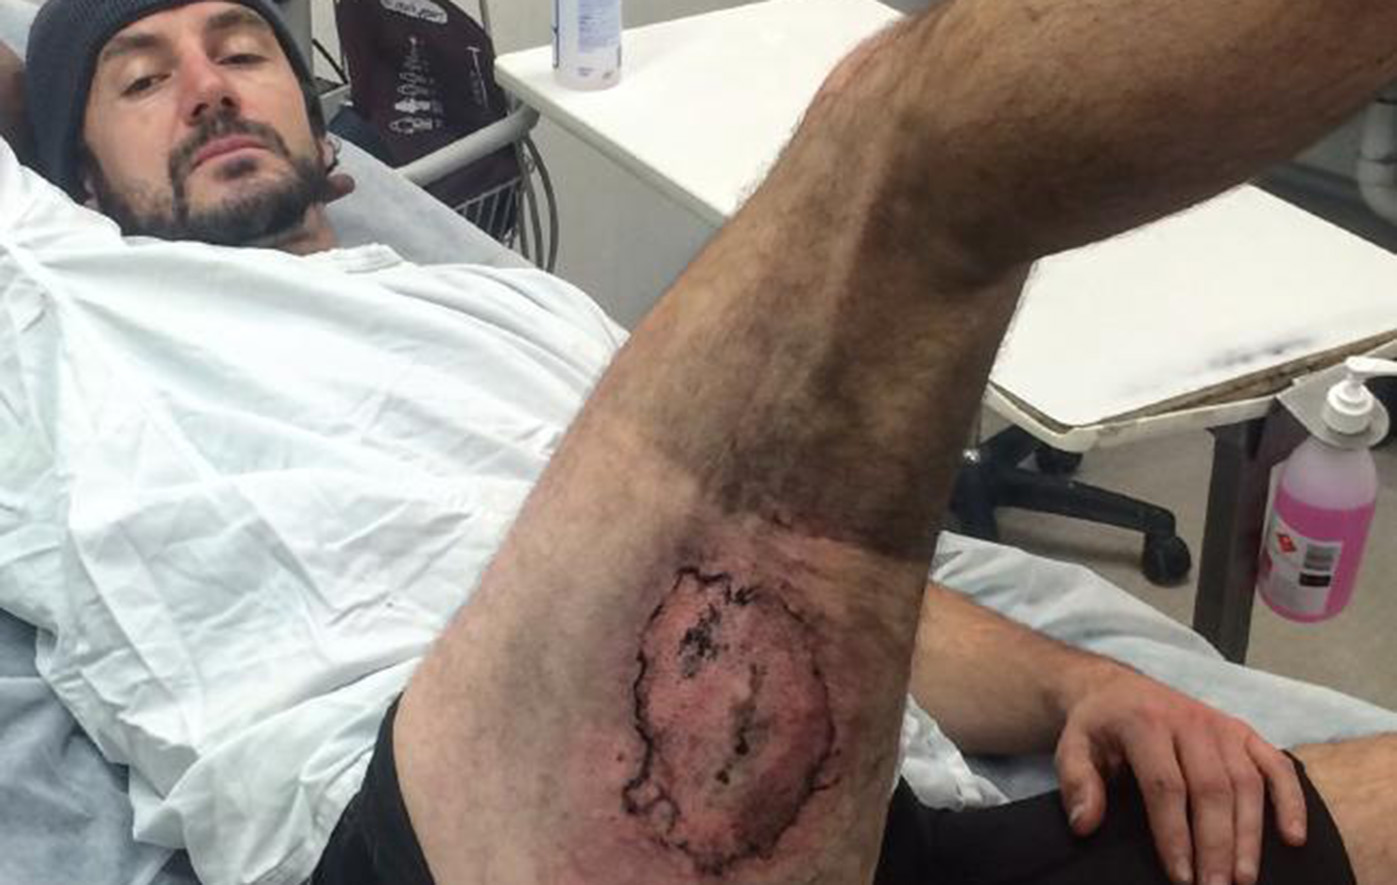 Sydney cyclist has skin graft surgery after phone explodes